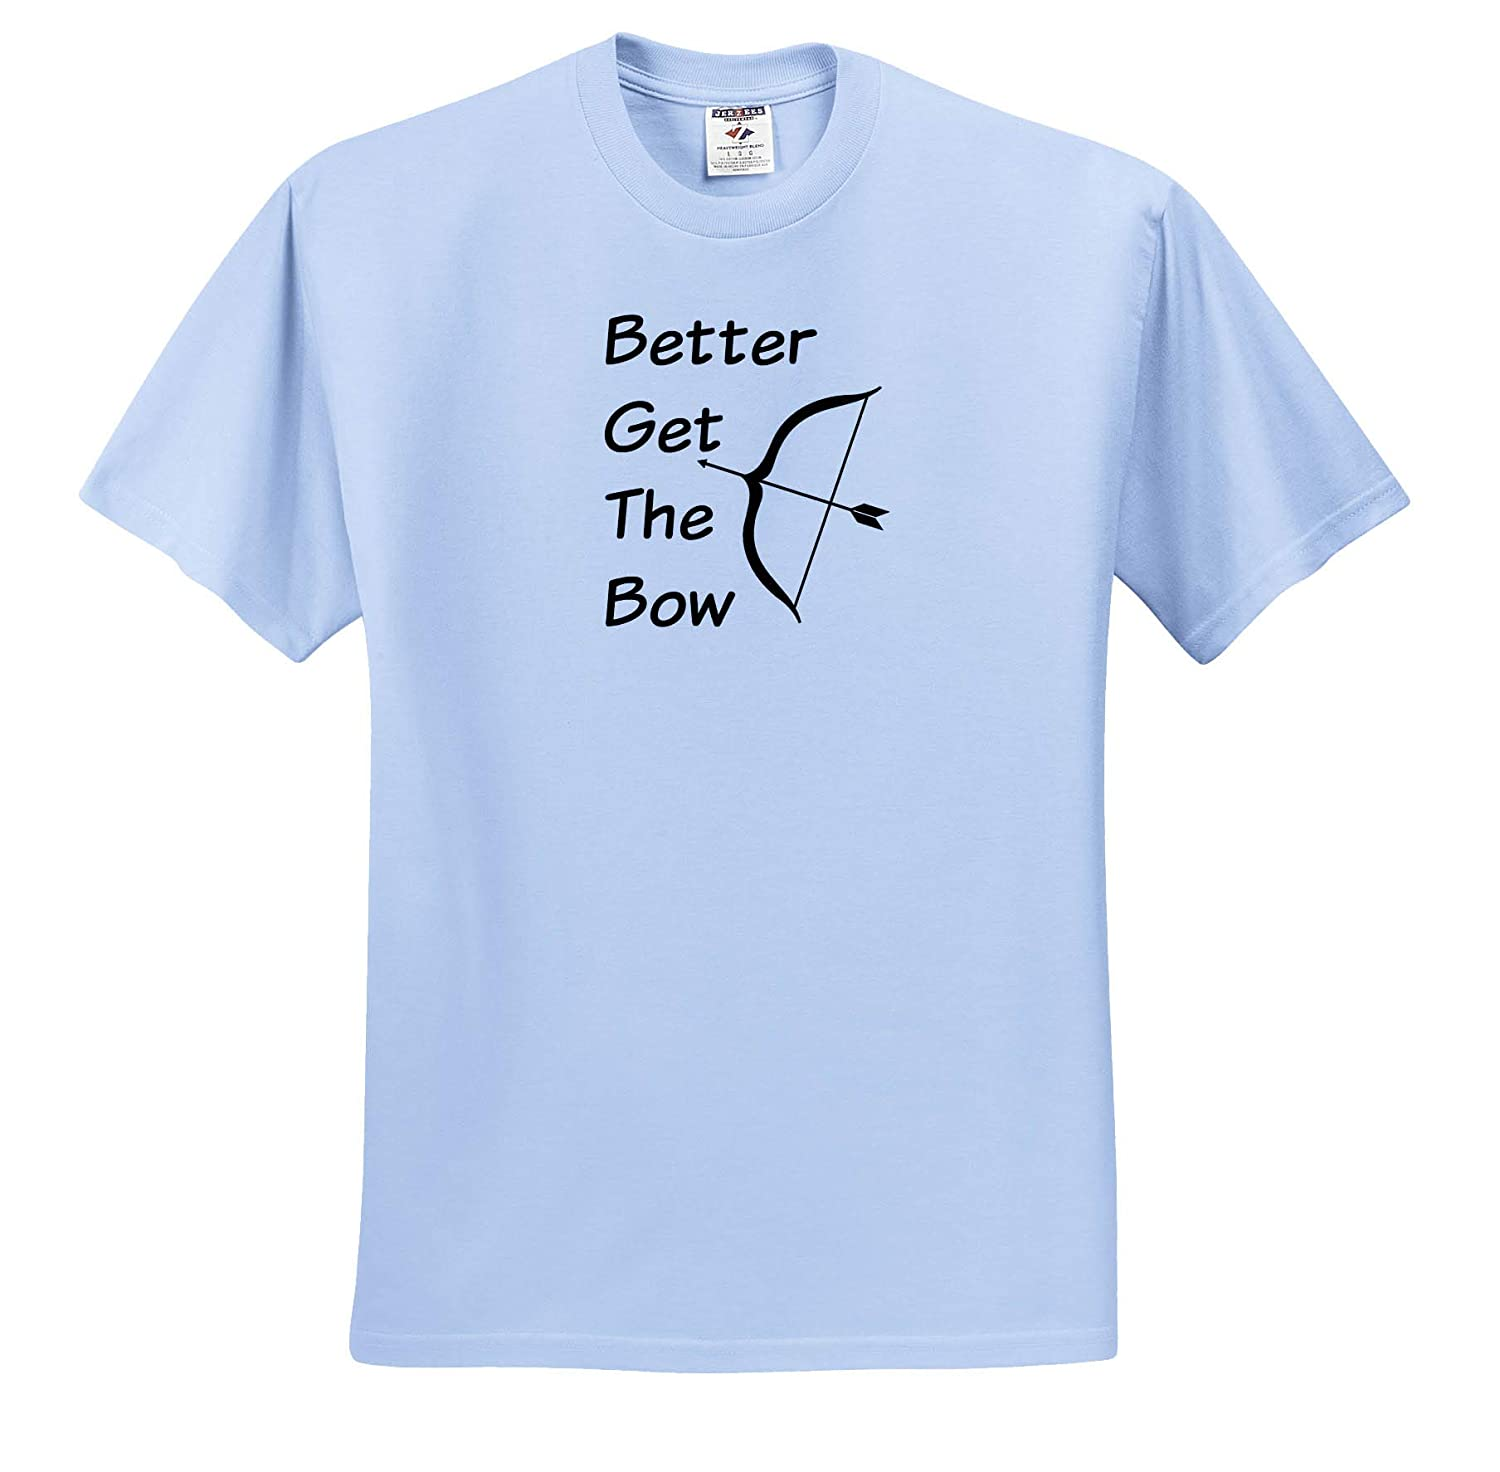 Adult T-Shirt XL 3dRose Carrie Merchant Image of Better Get The Bow ts/_309663